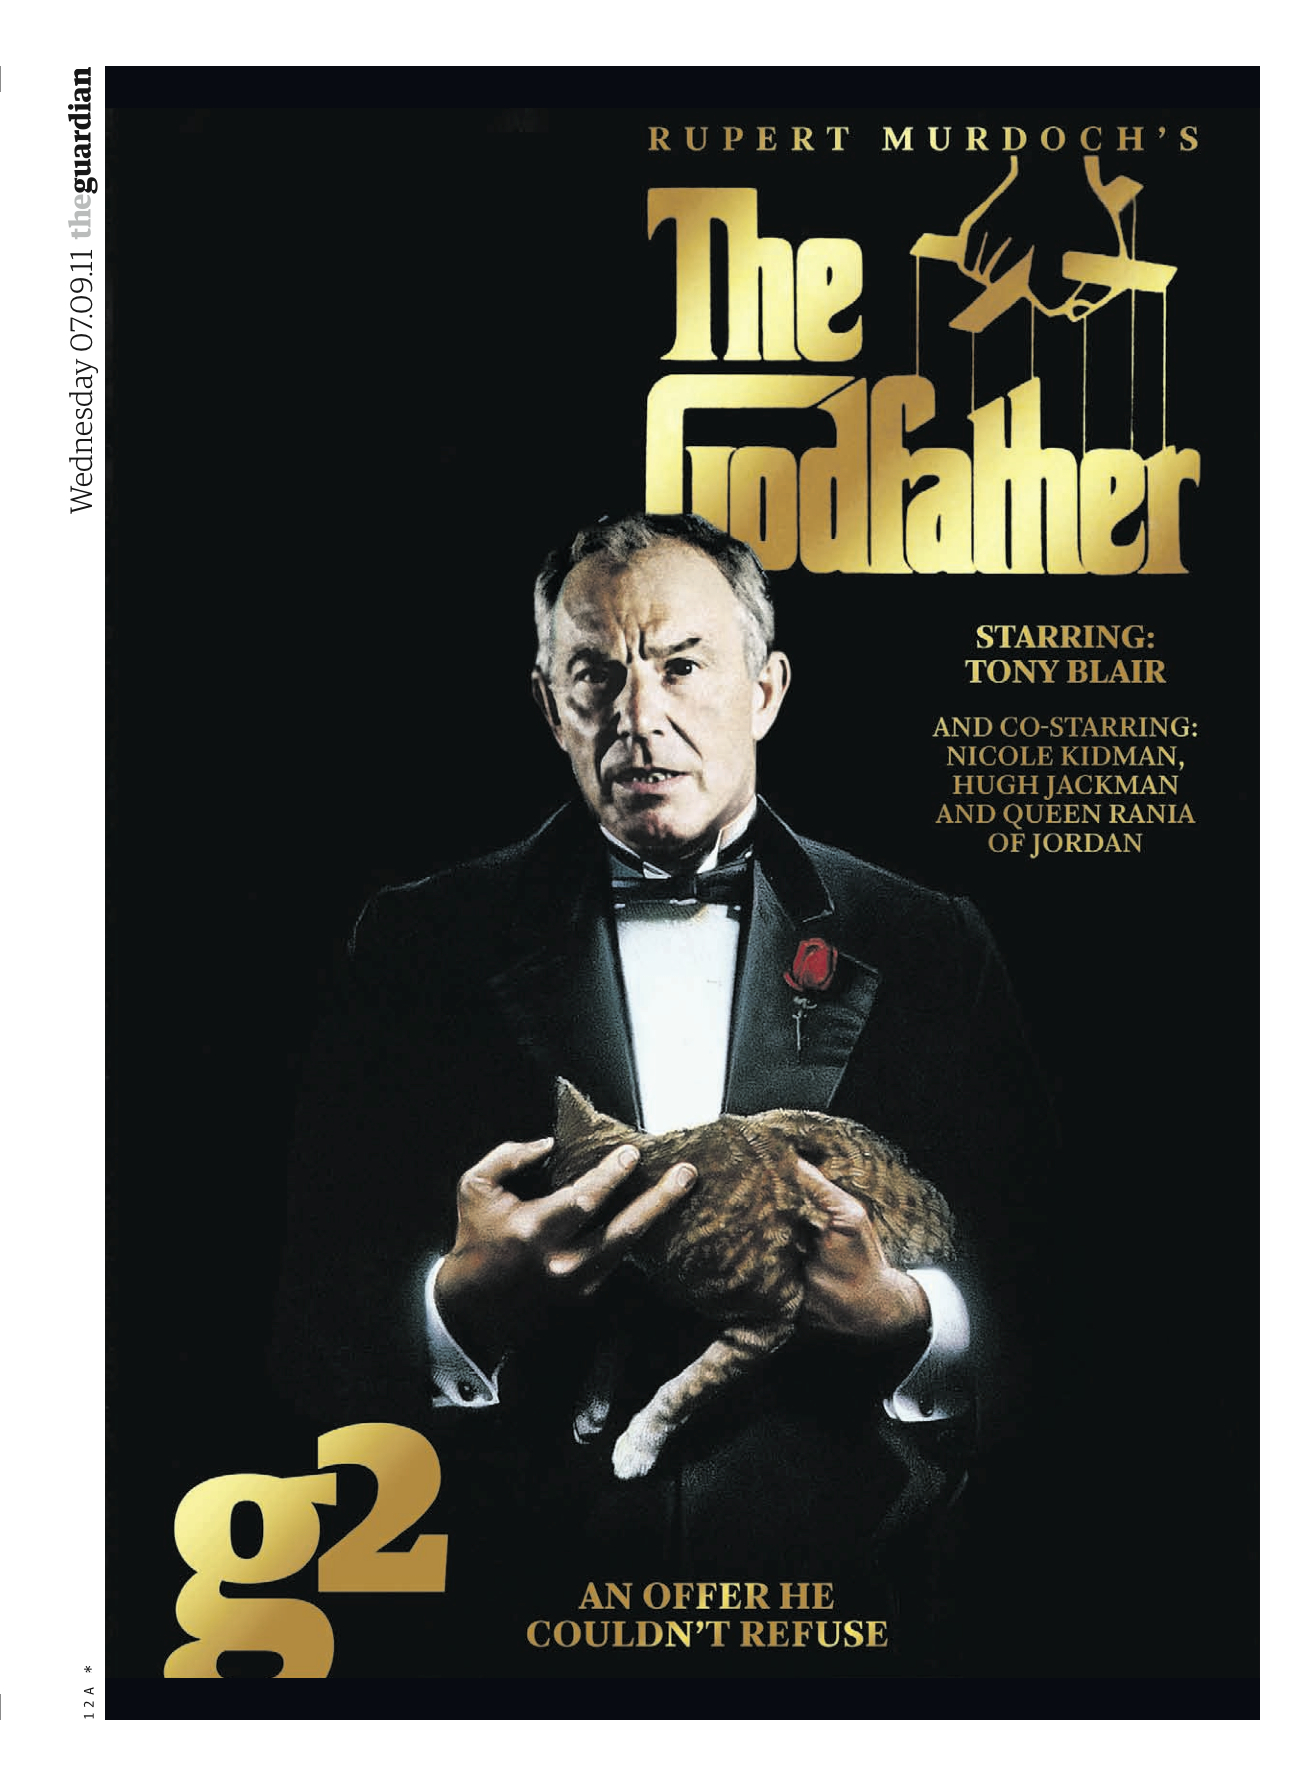 07.09.11_G2 Cover_Godfather